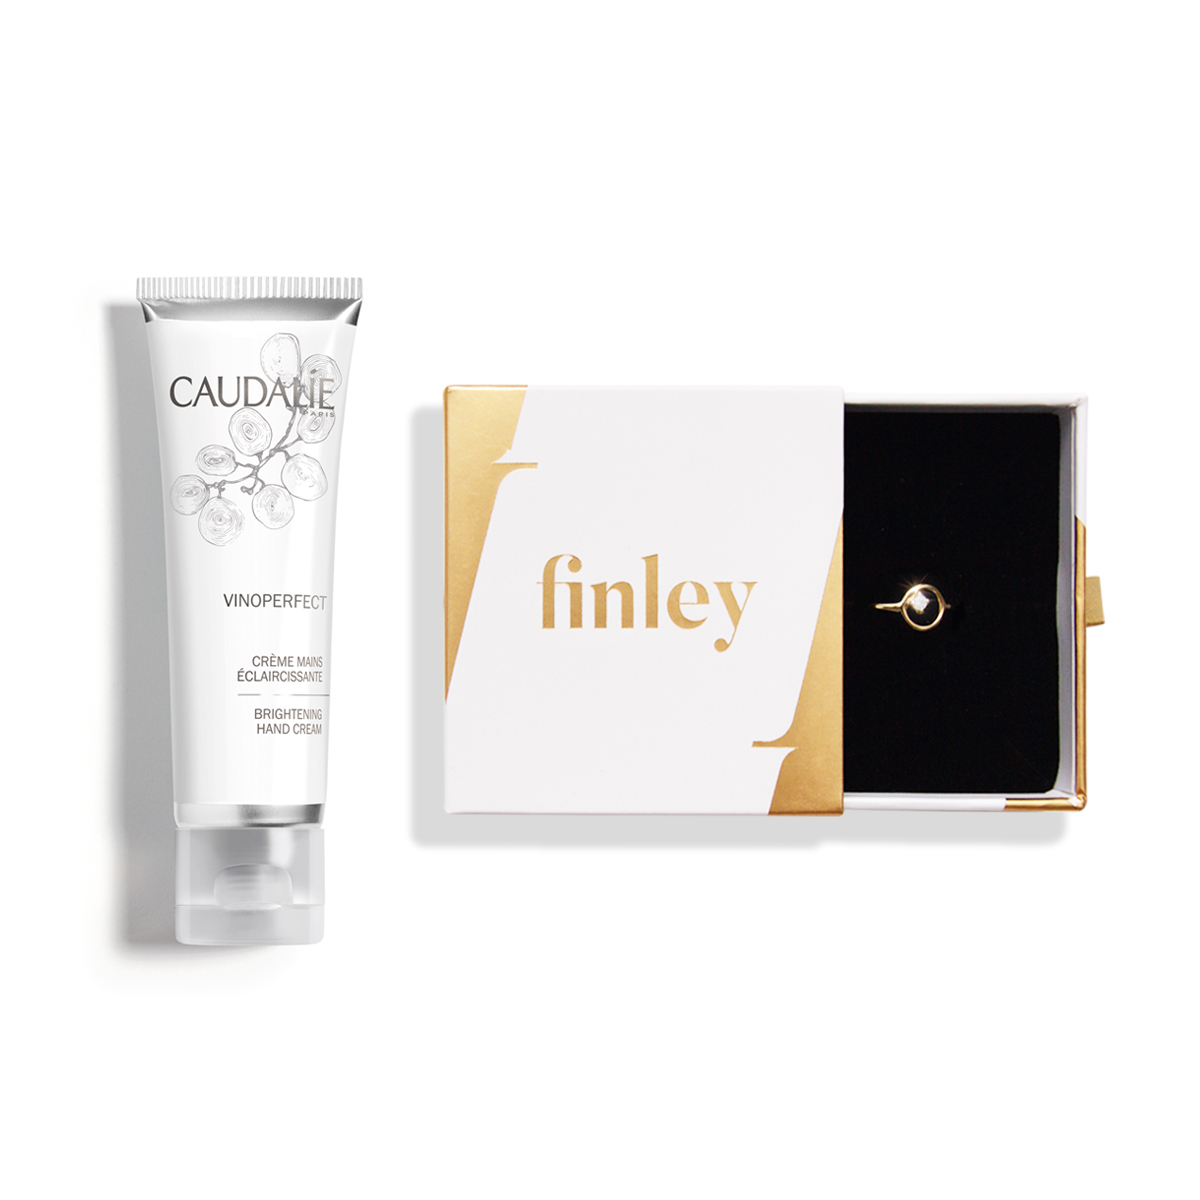 Hand Cream + Finley Ring Size 5